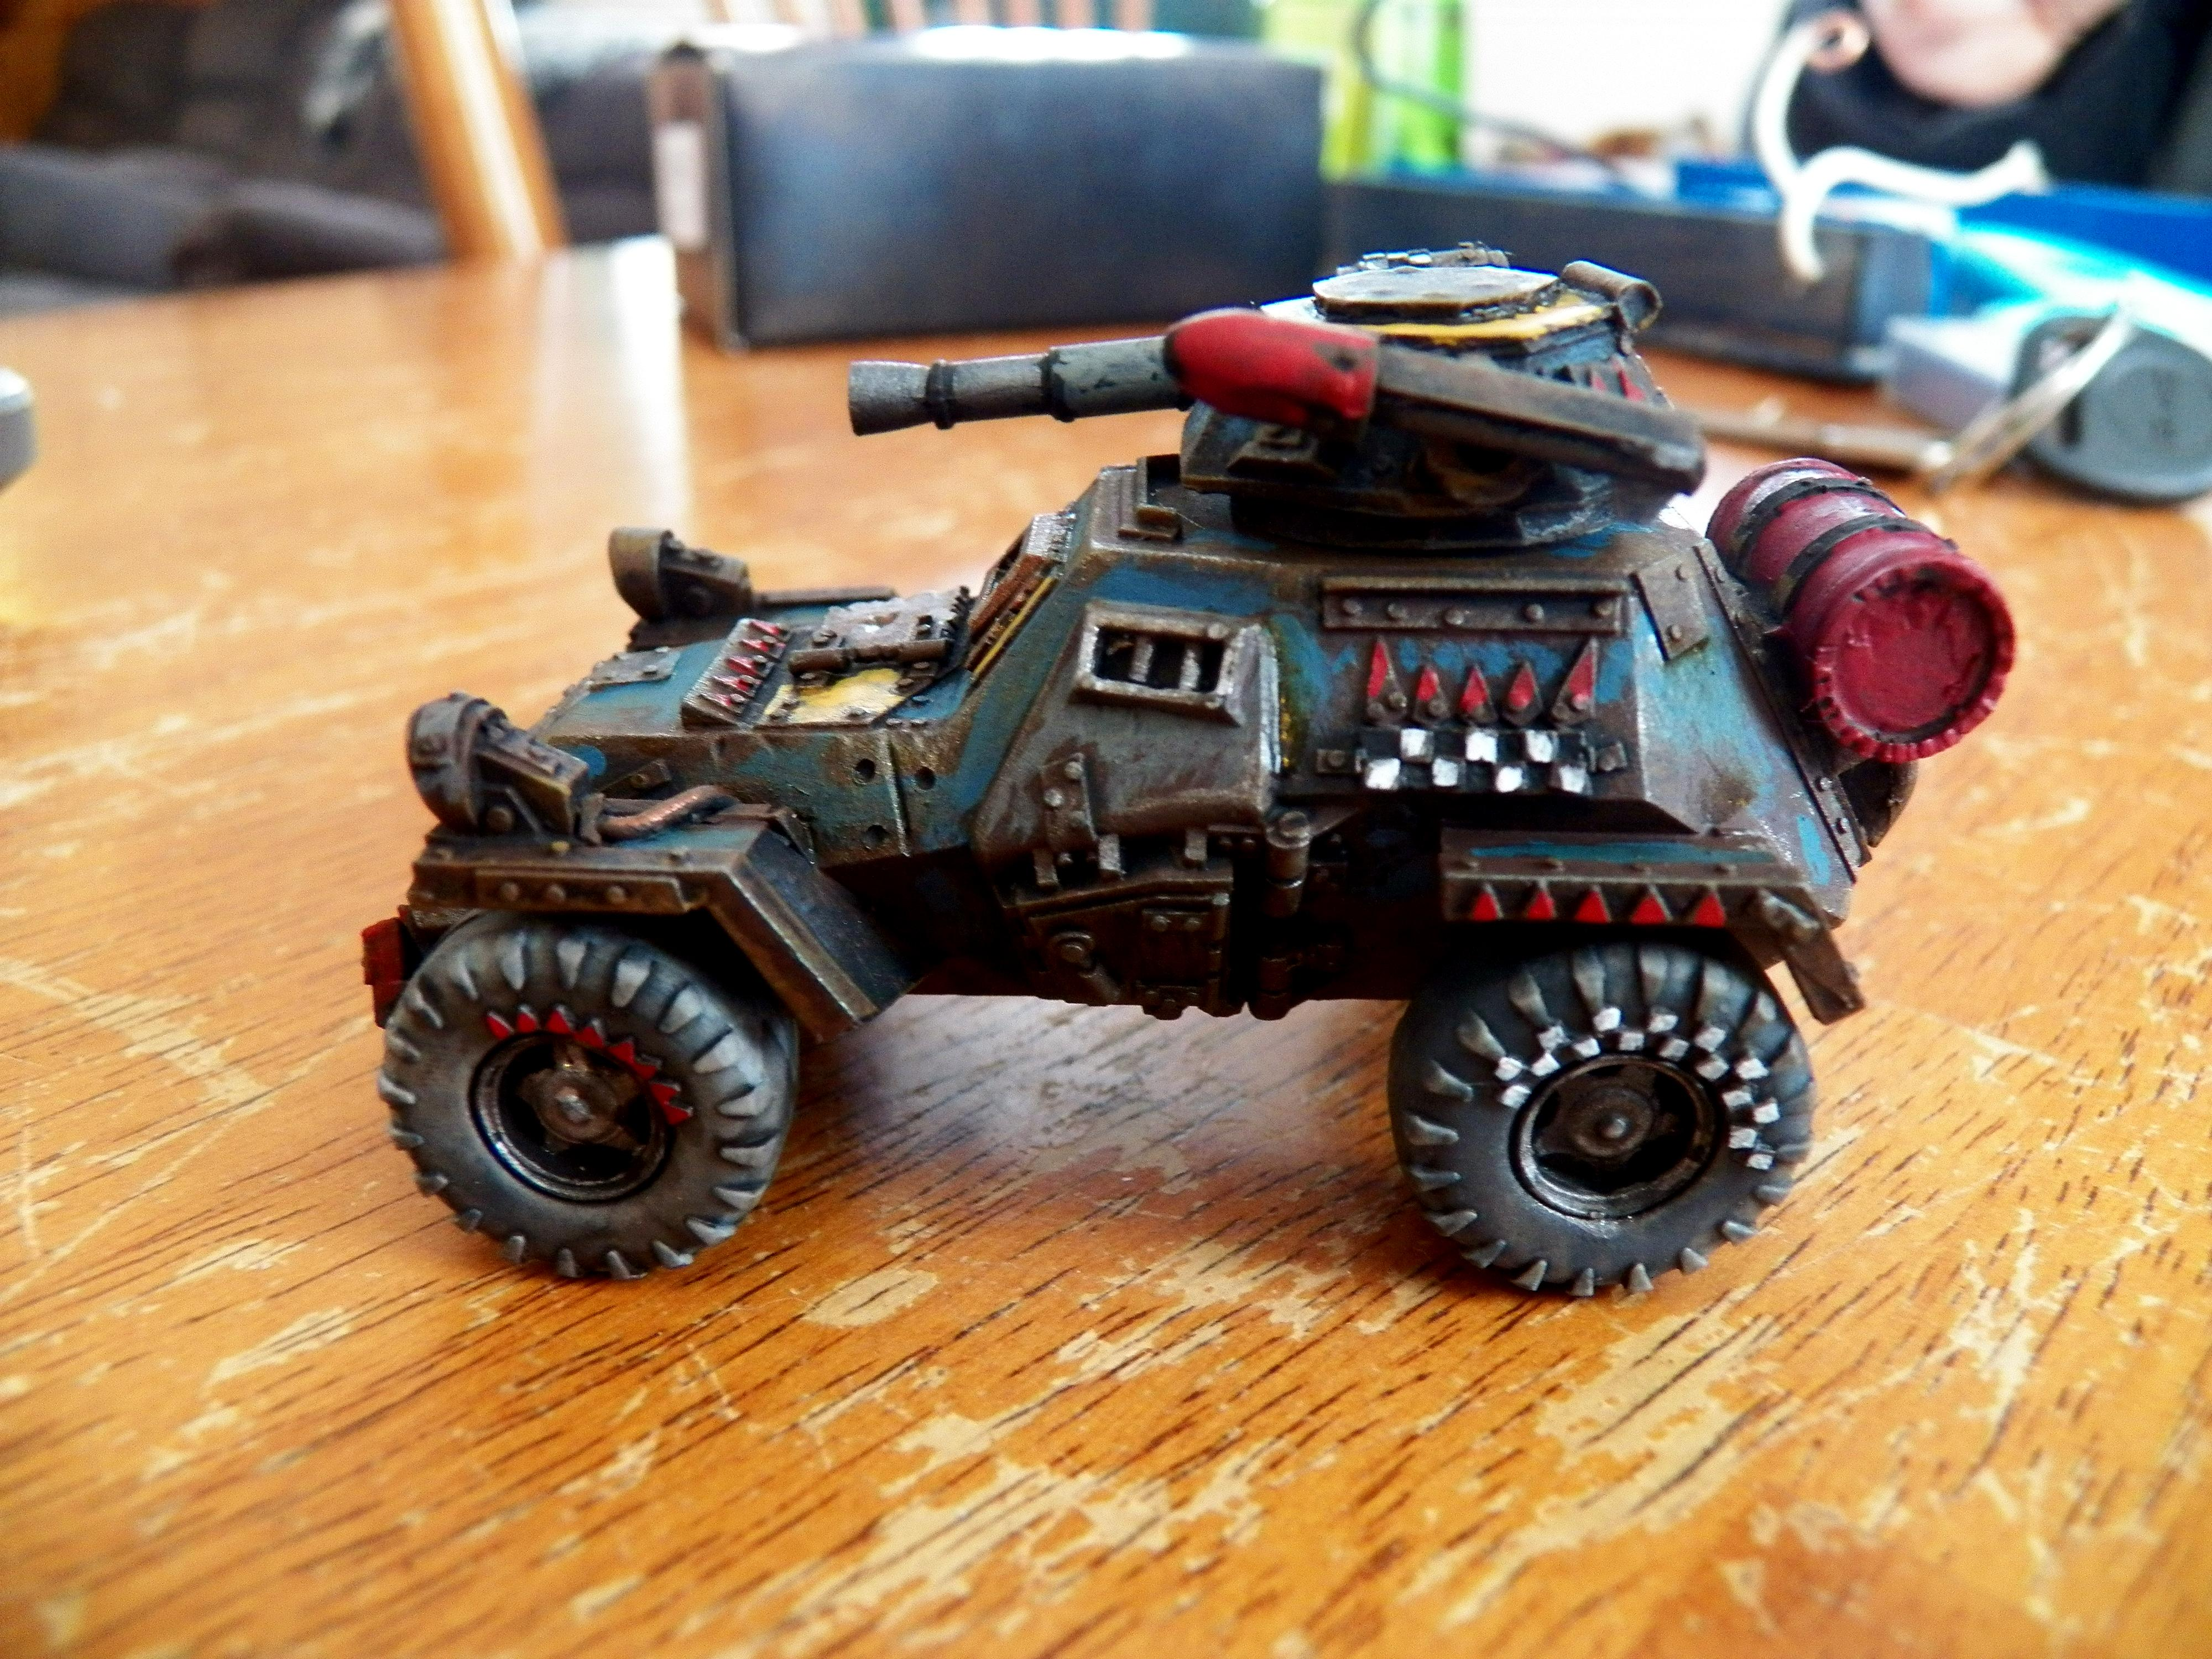 Ba-64, Buggy, Conversion, Grots, Orks